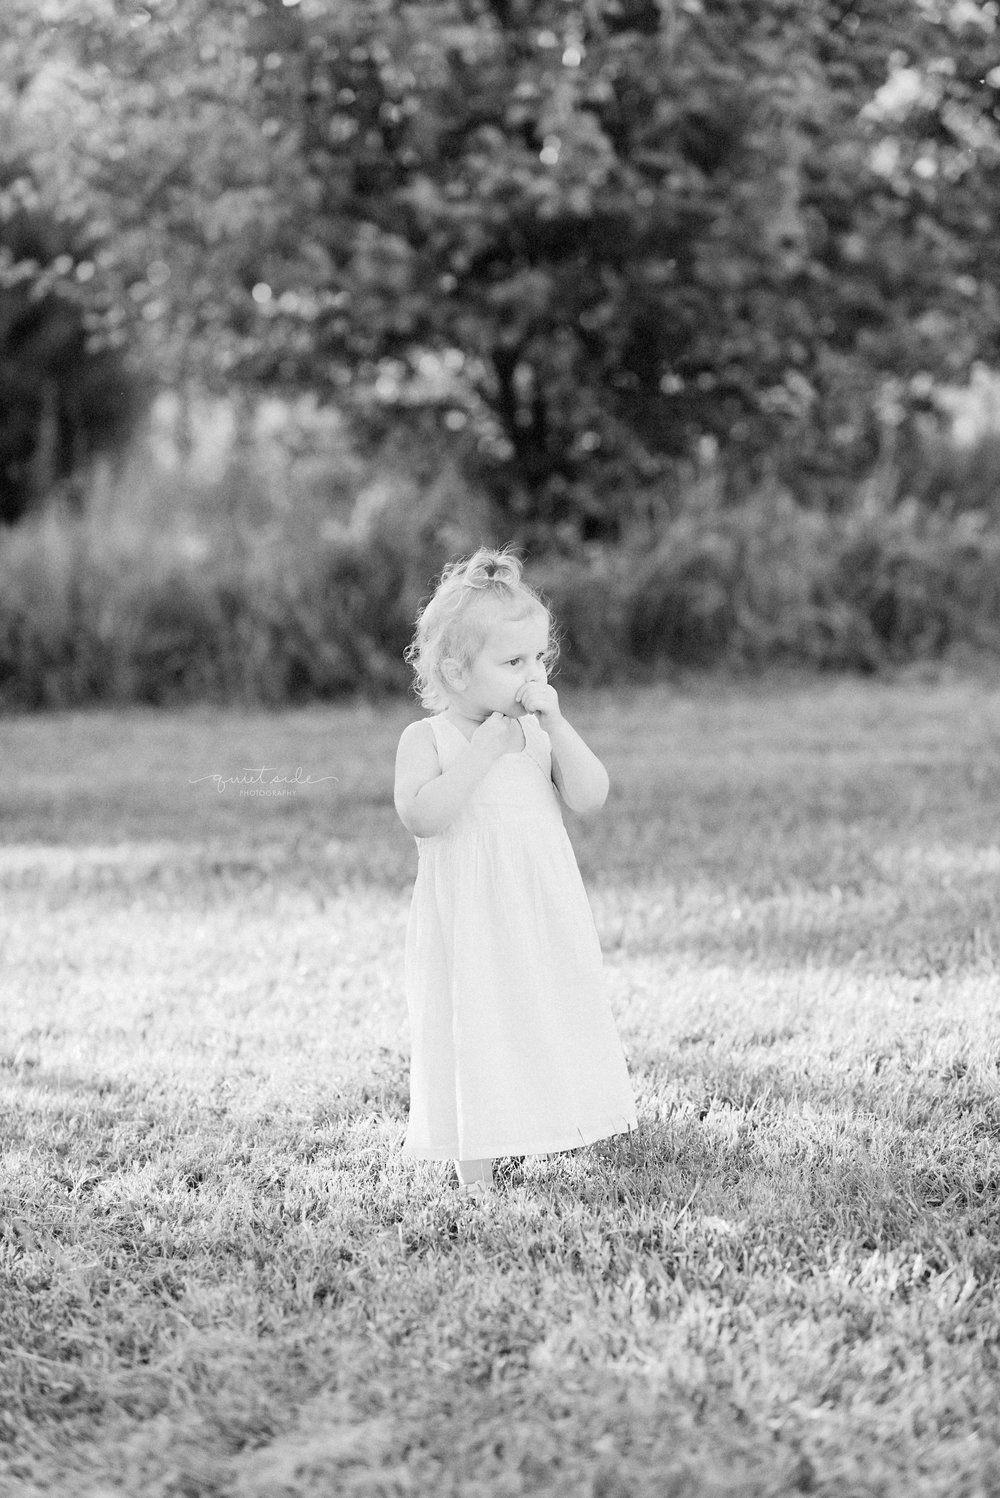 QuietSidePhotography-Purcellville-Family-Photographer-LoudounCounty-NorthernVirginia-Baby-Child-Blackandwhite-Sunset-Goldenhour-Milestone-Emmais2.jpg